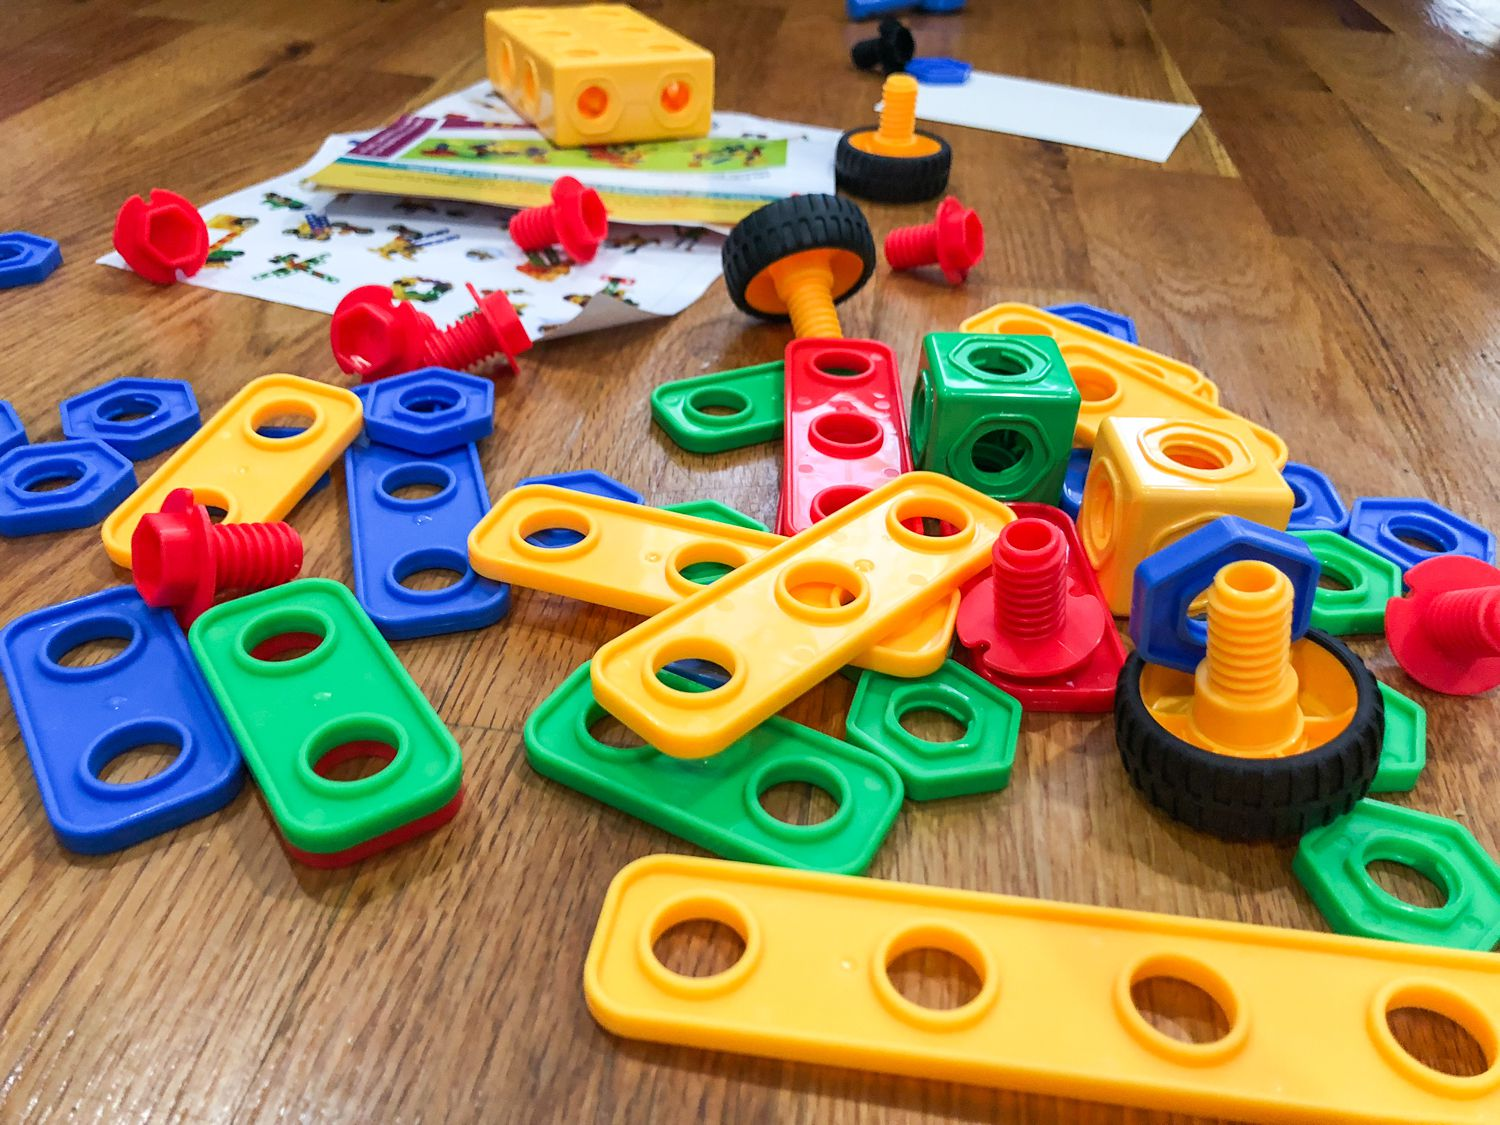 the 10 best toys to buy for 3 year olds in 2018